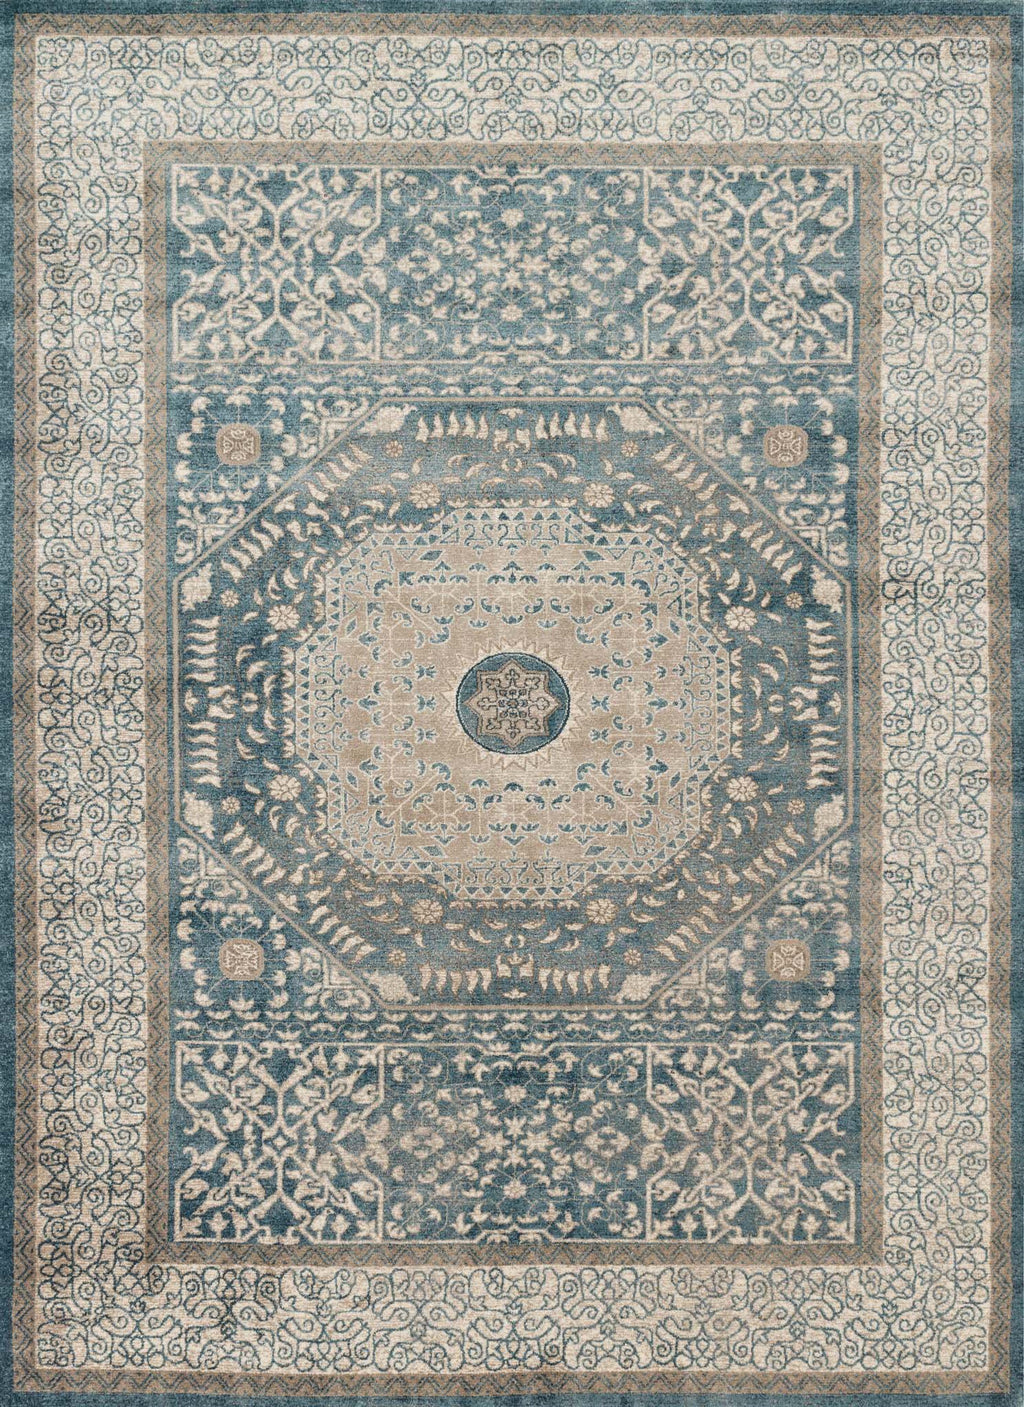 CENTURY Collection Rug  in  BLUE / SAND Blue Runner Power-Loomed Polypropylene